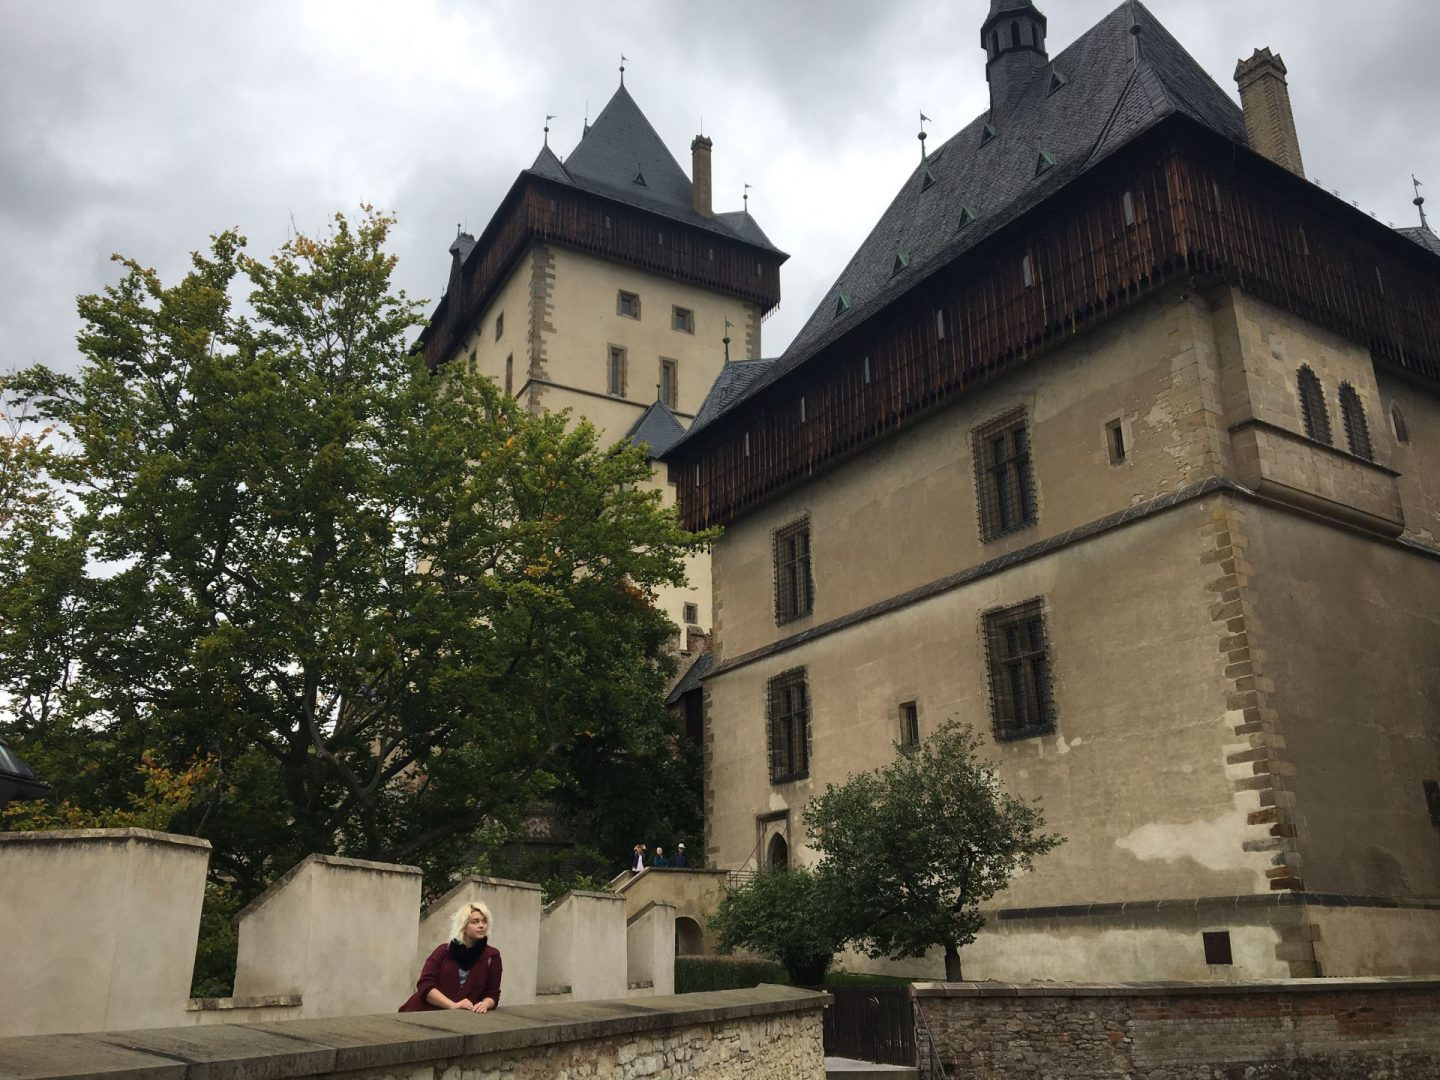 Exploring Czechia with an American: Karlstejn Castle edition